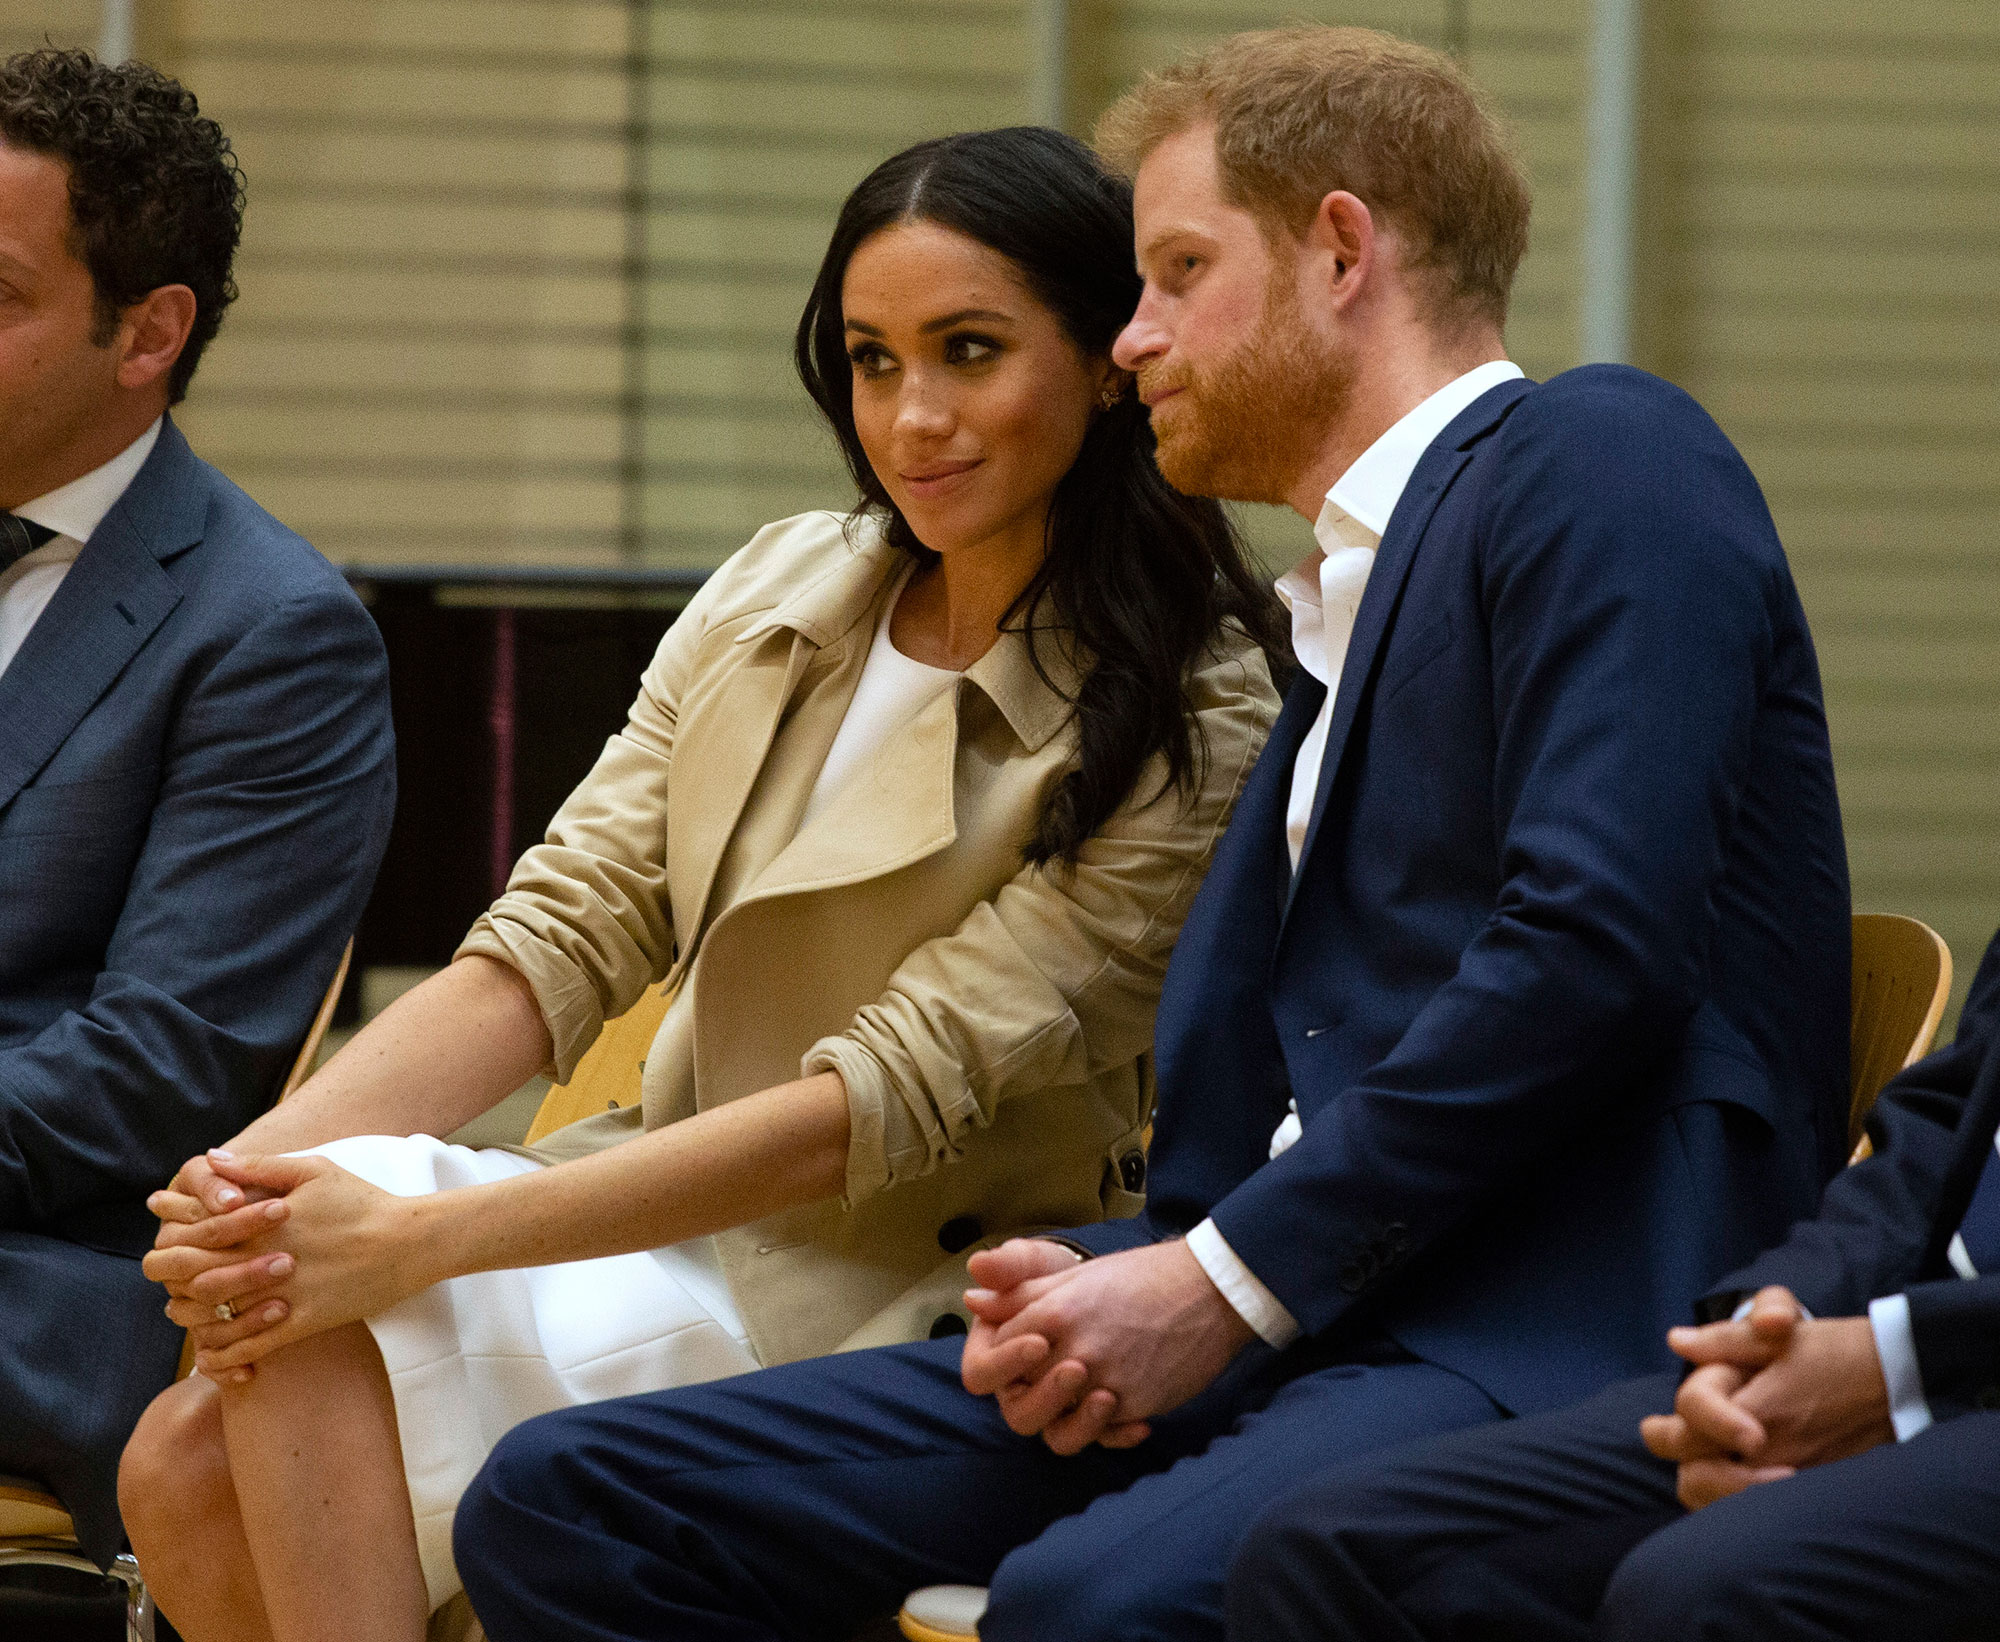 "<div class=""meta image-caption""><div class=""origin-logo origin-image none""><span>none</span></div><span class=""caption-text"">Prince Harry and Meghan, Duchess of Sussex watch the Bangarra Dance Company inside the Sydney Opera House in Sydney, Australia, Tuesday, Oct. 16, 2018. (Ian Vogler/Pool Photo via AP)</span></div>"